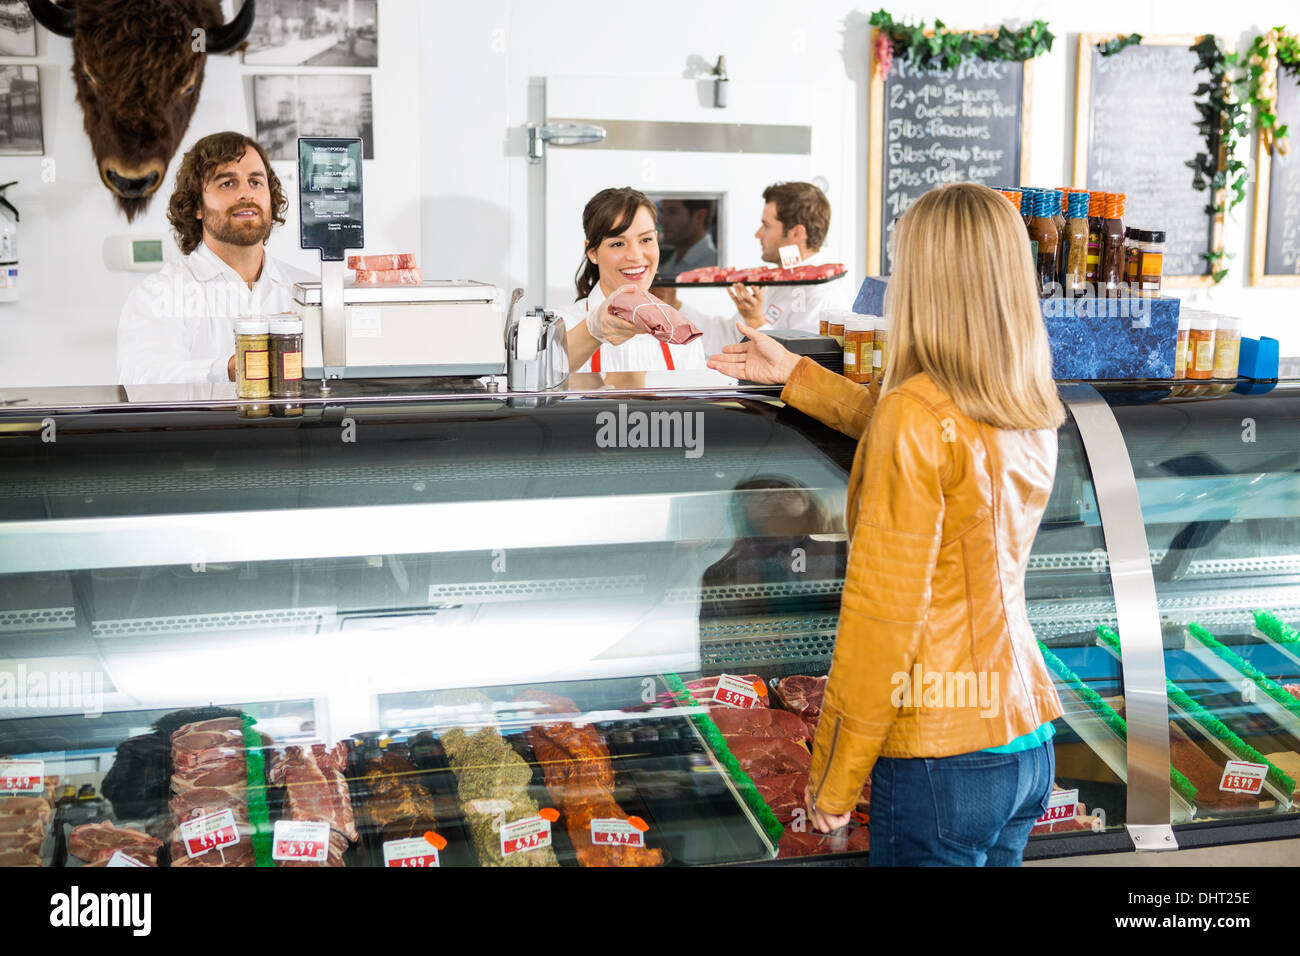 Saleswoman Giving Meat To Female Customer - Stock Image